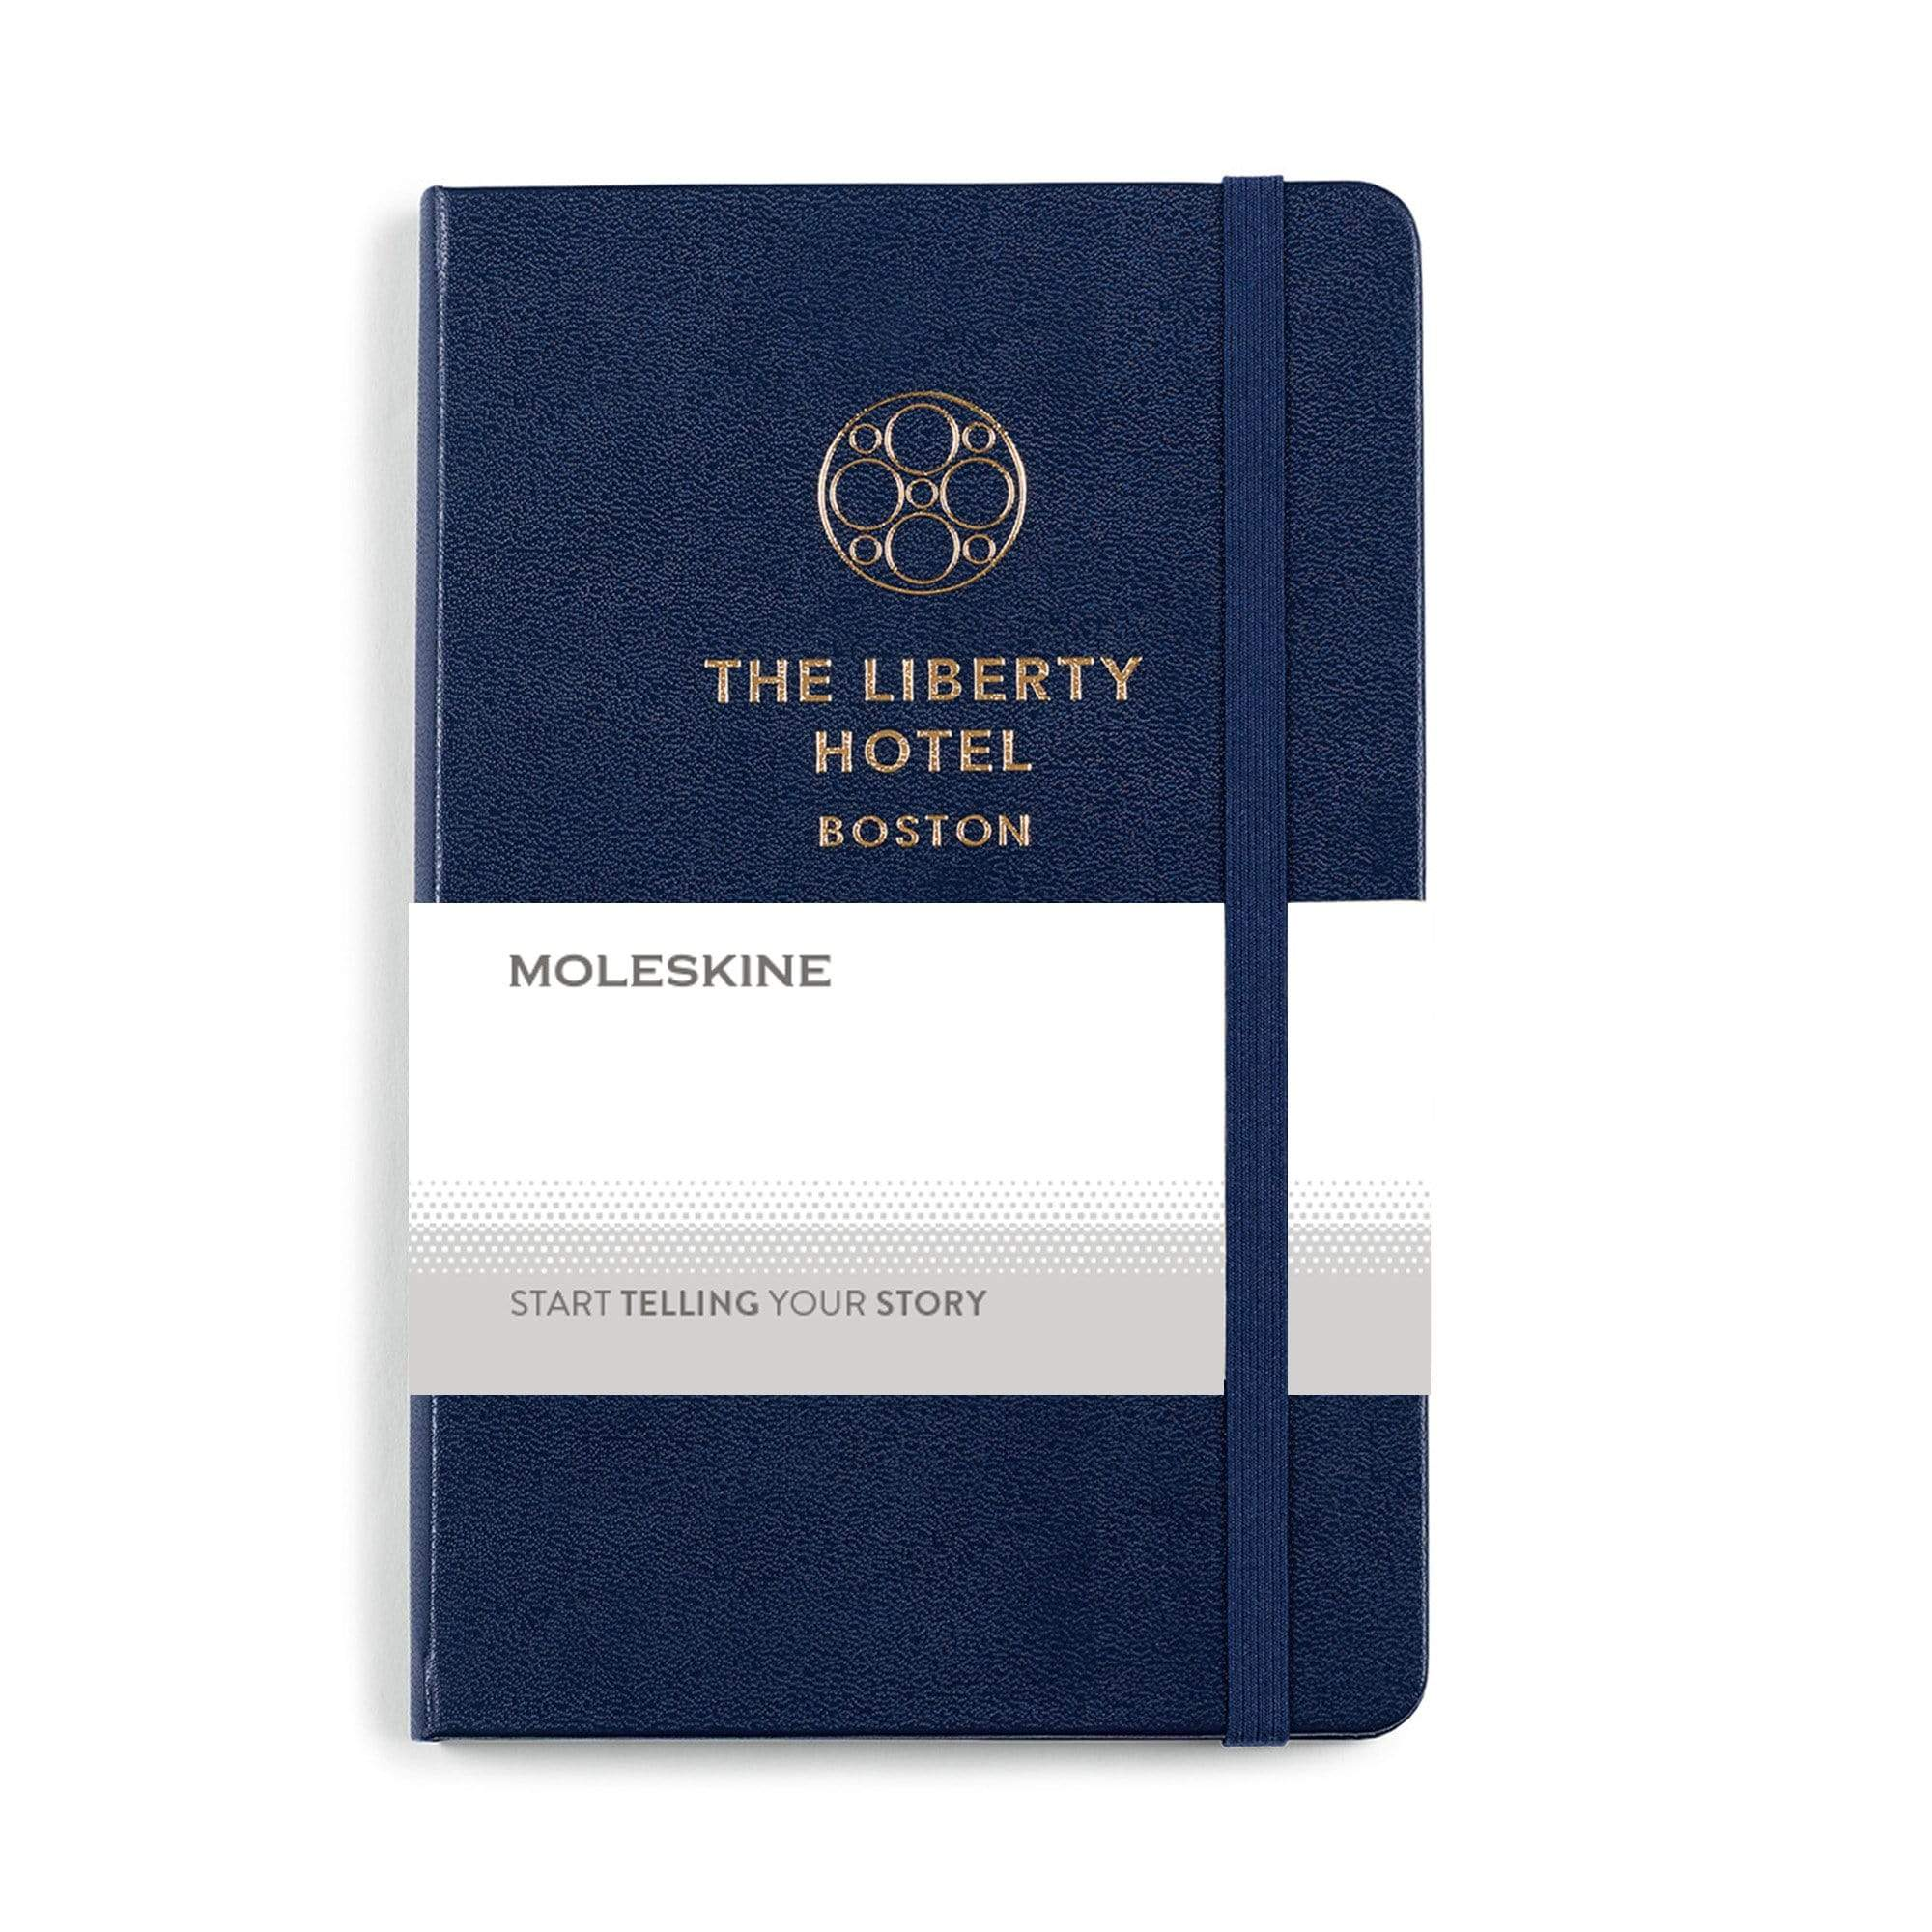 Moleskine - 25 piece minimum Accessories 25 piece minimum / Navy Moleskine - medium Hard cover Notebook and GO Pen Gift Set